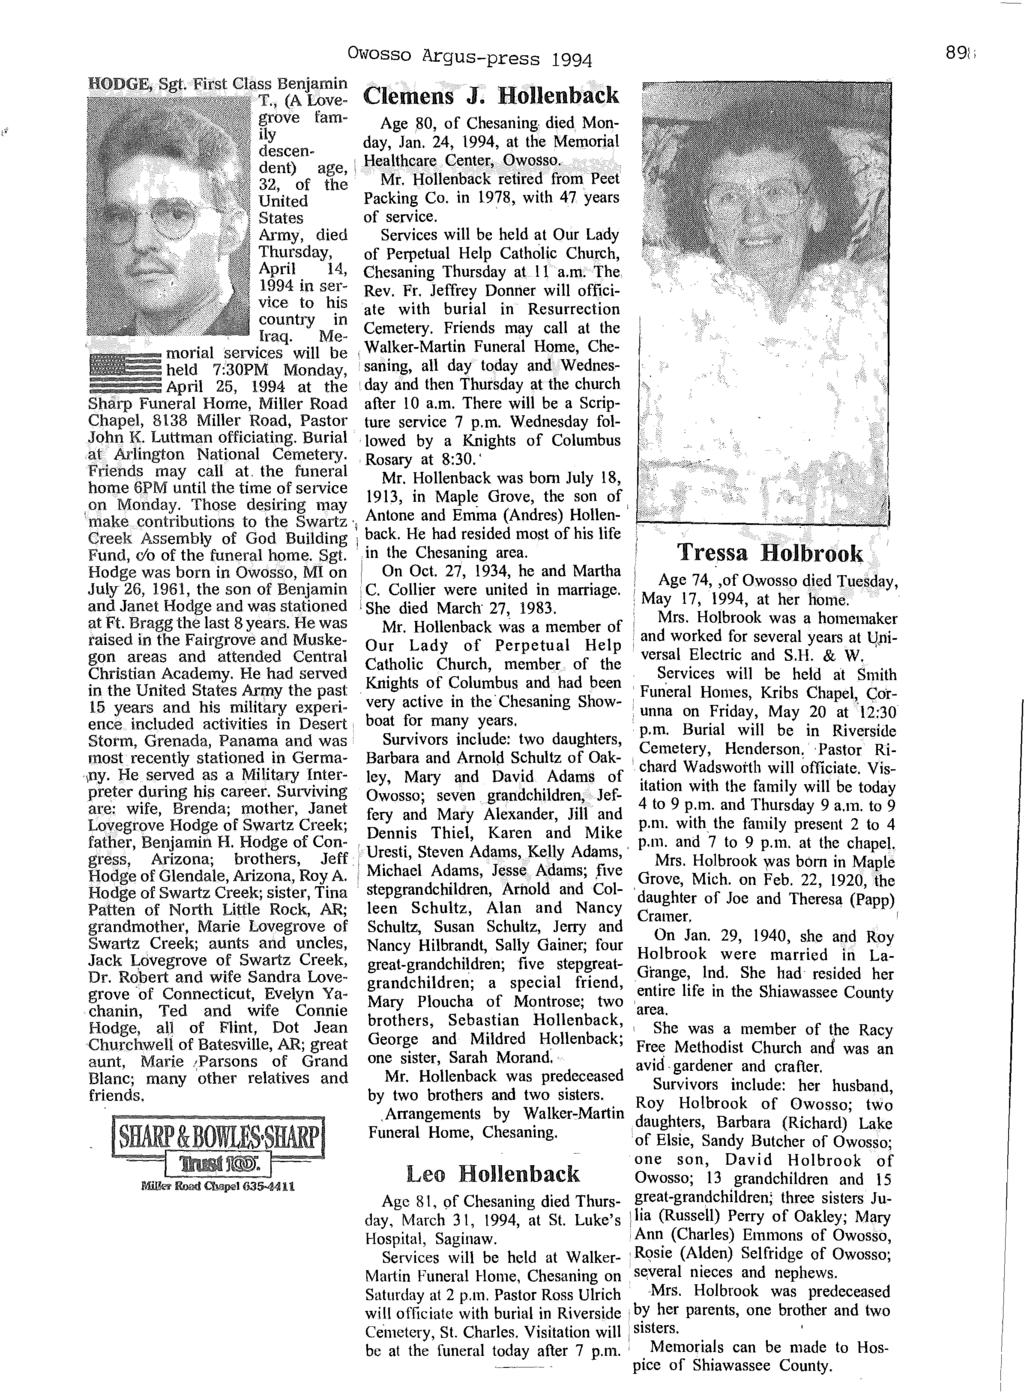 """A""""... '.. """". Sgt. First Class Benjamin Owosso Argus-press 1994 (A Love- Clemens J. Hollenback grove fam- Age 80, of Chesaning died Mon- ~~scen- day, Jan."